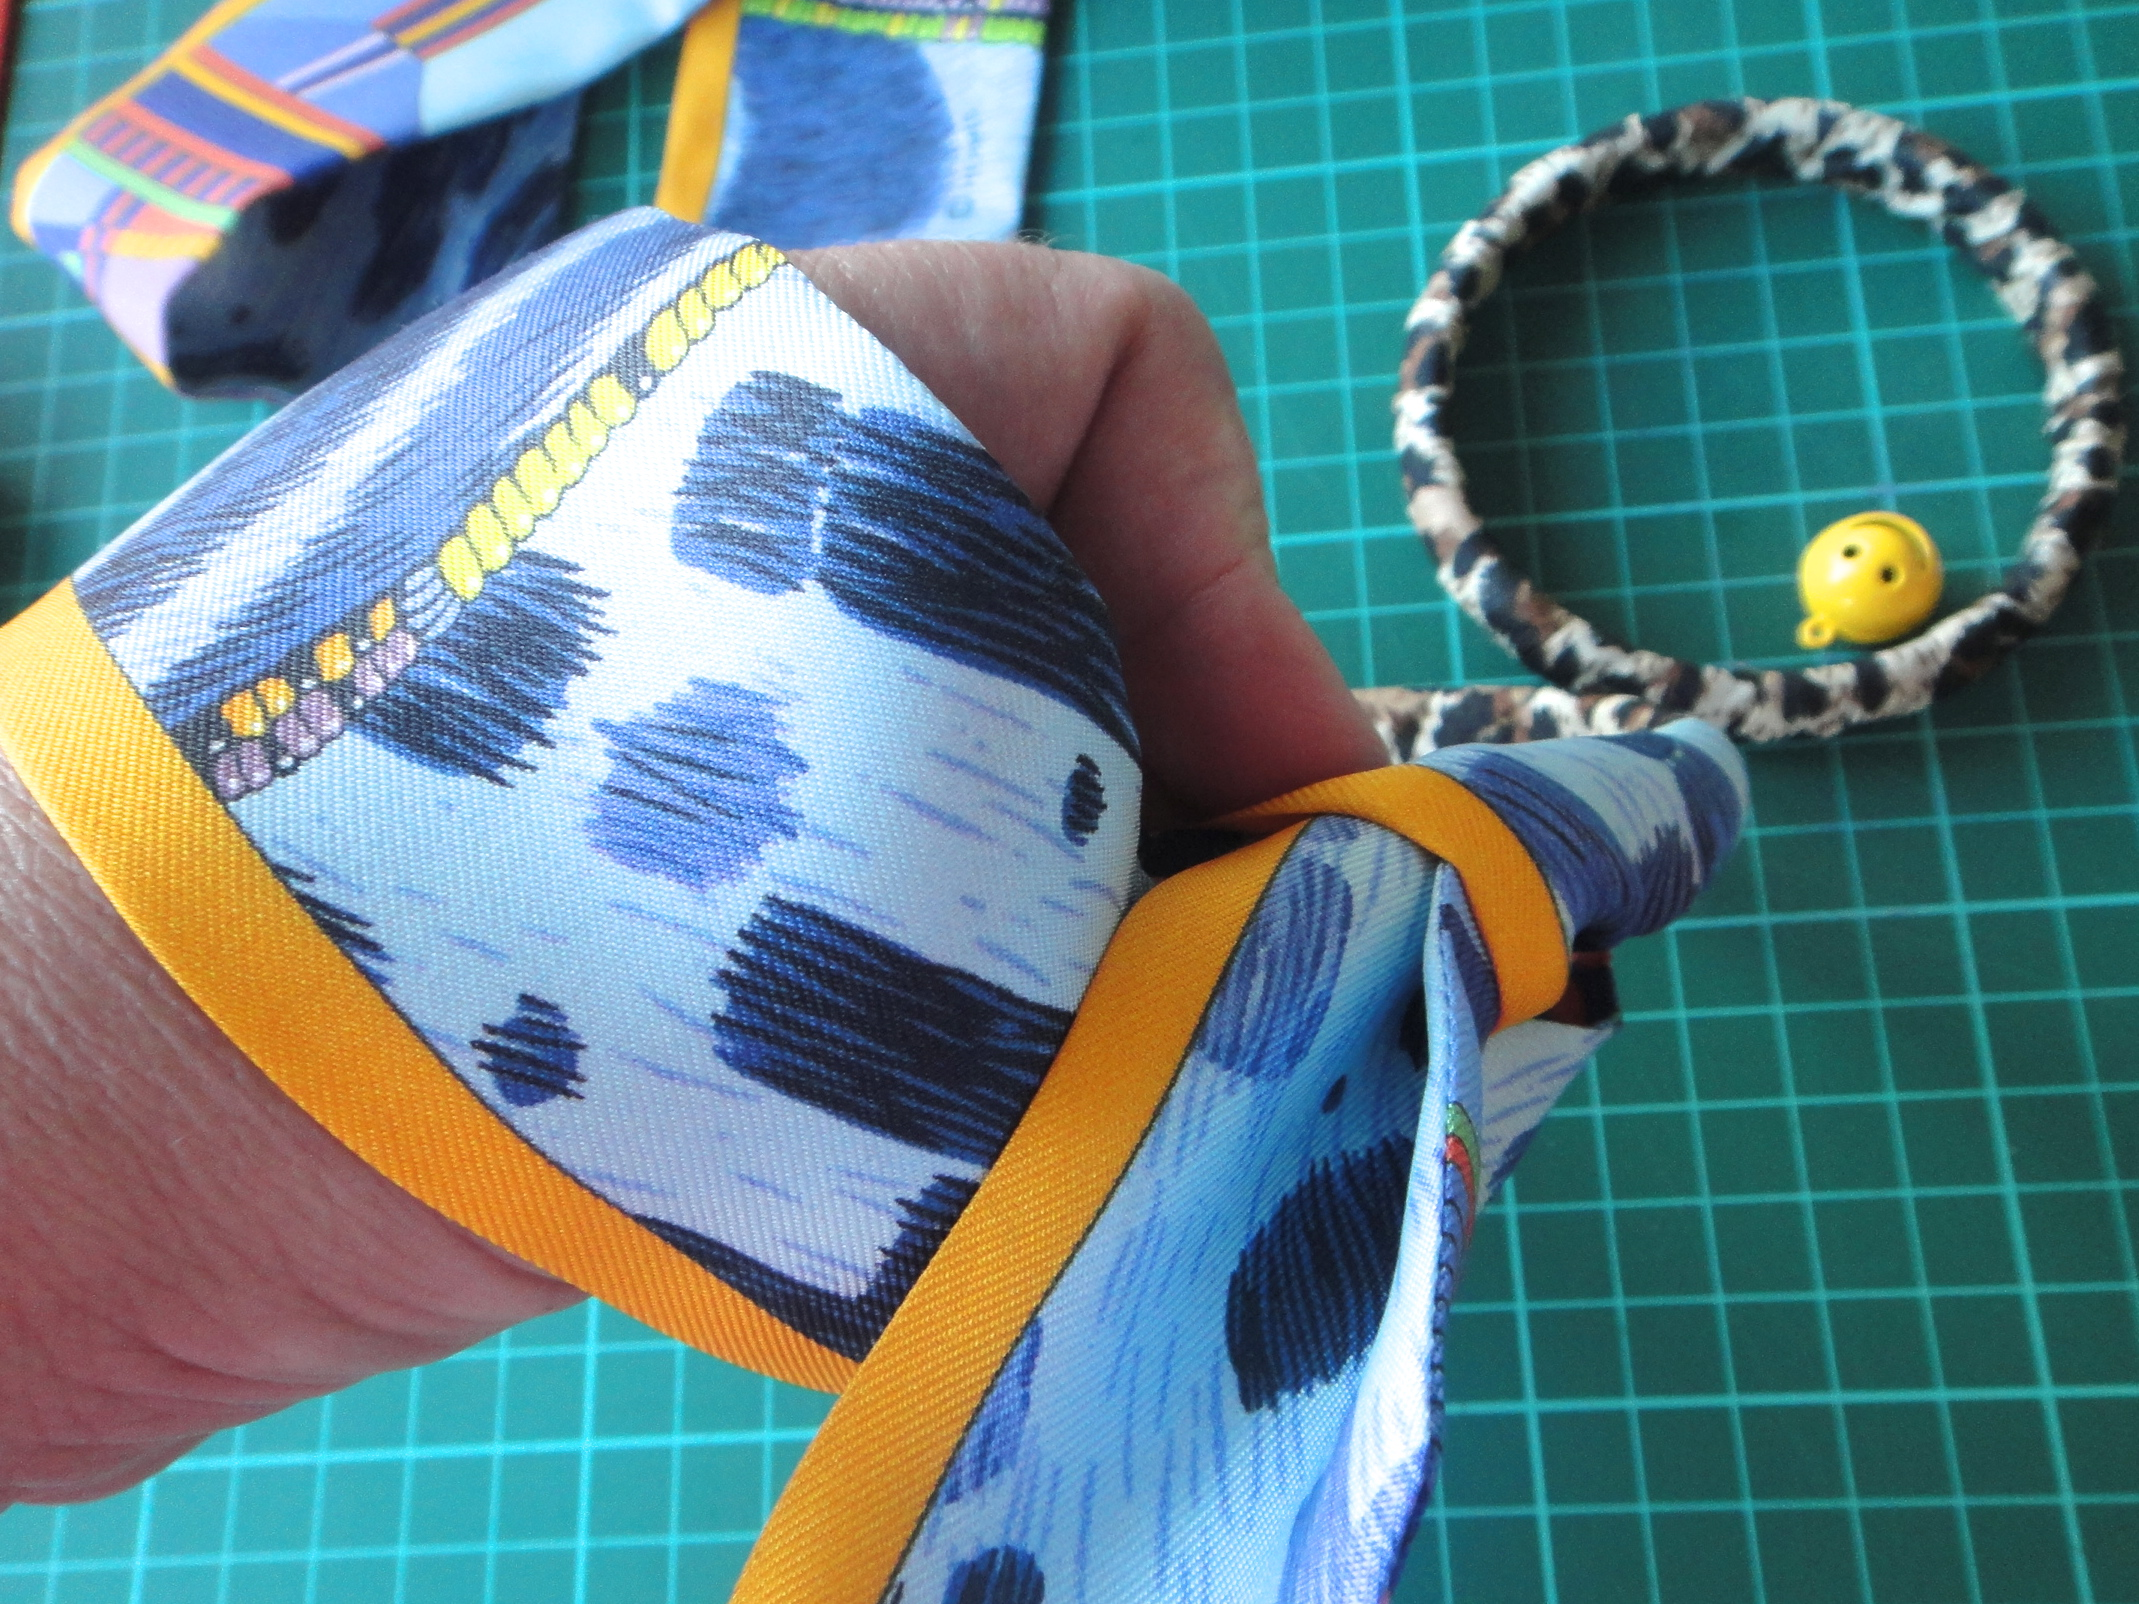 Wrapping Pelages et Camouflages around a bangle